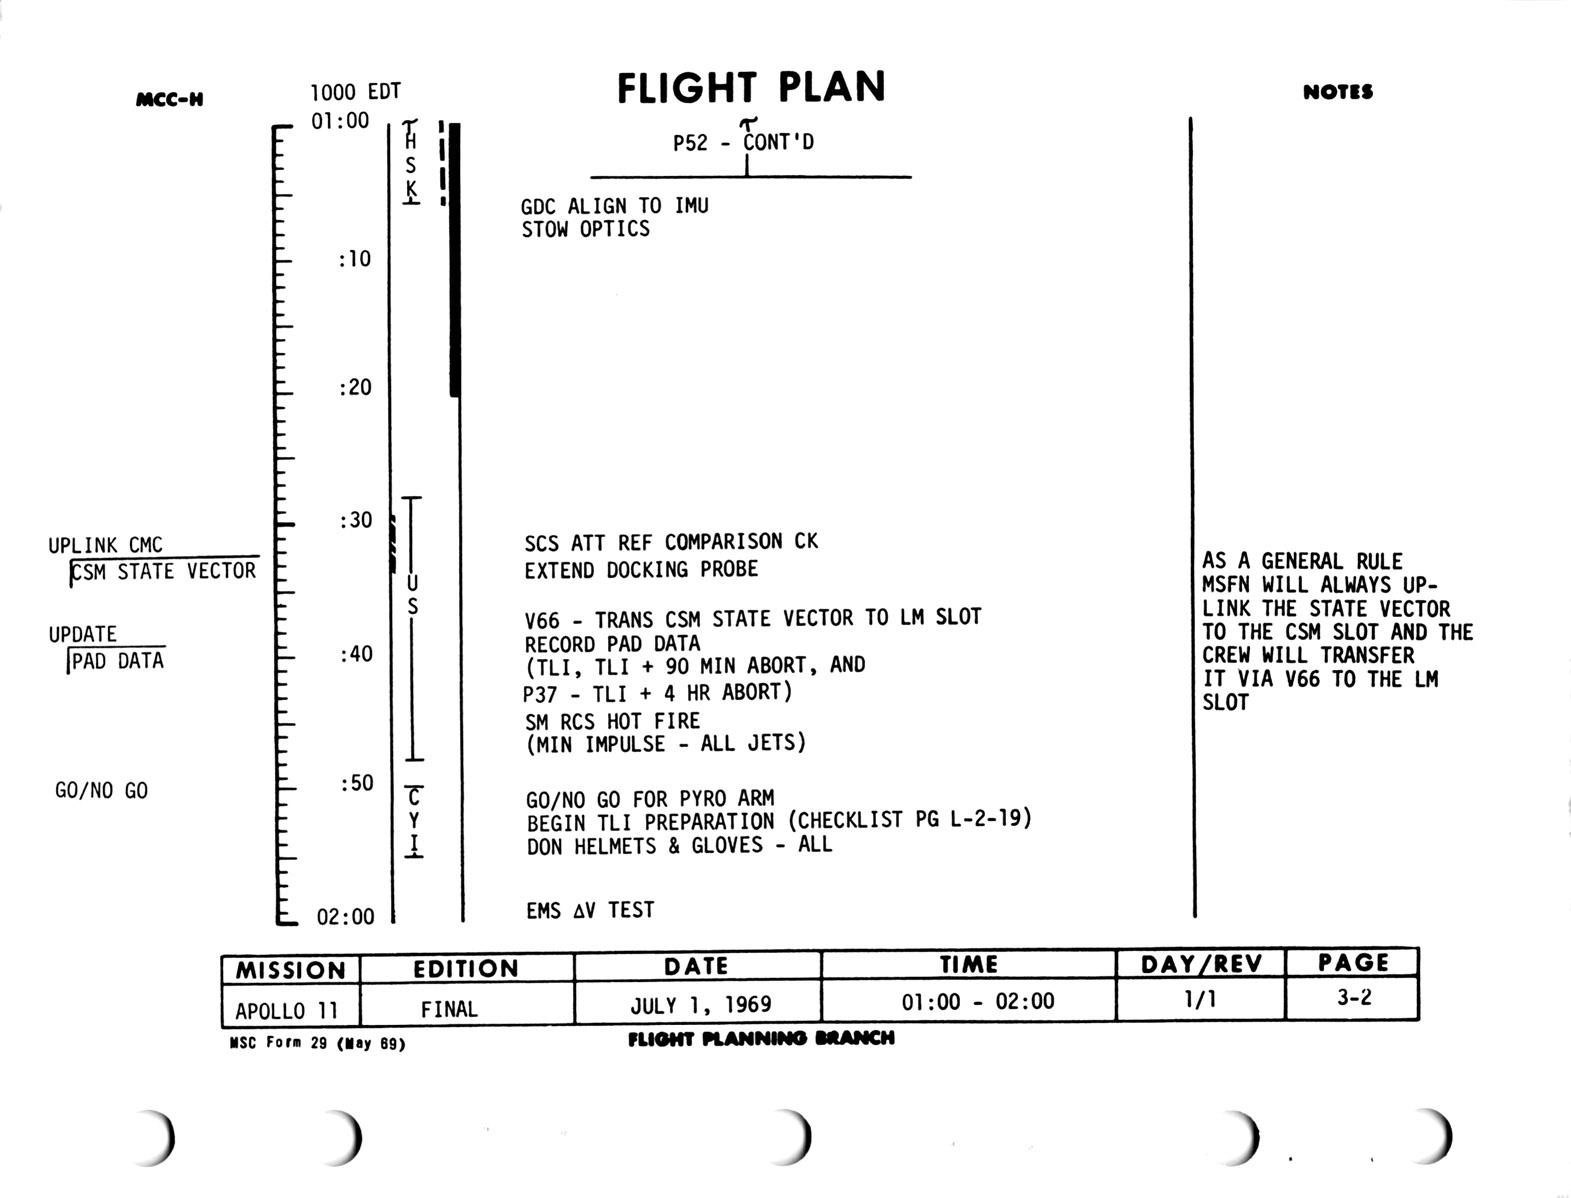 Apollo 11 Flight Journal - Day 1, part 2: Earth Orbit and Translunar